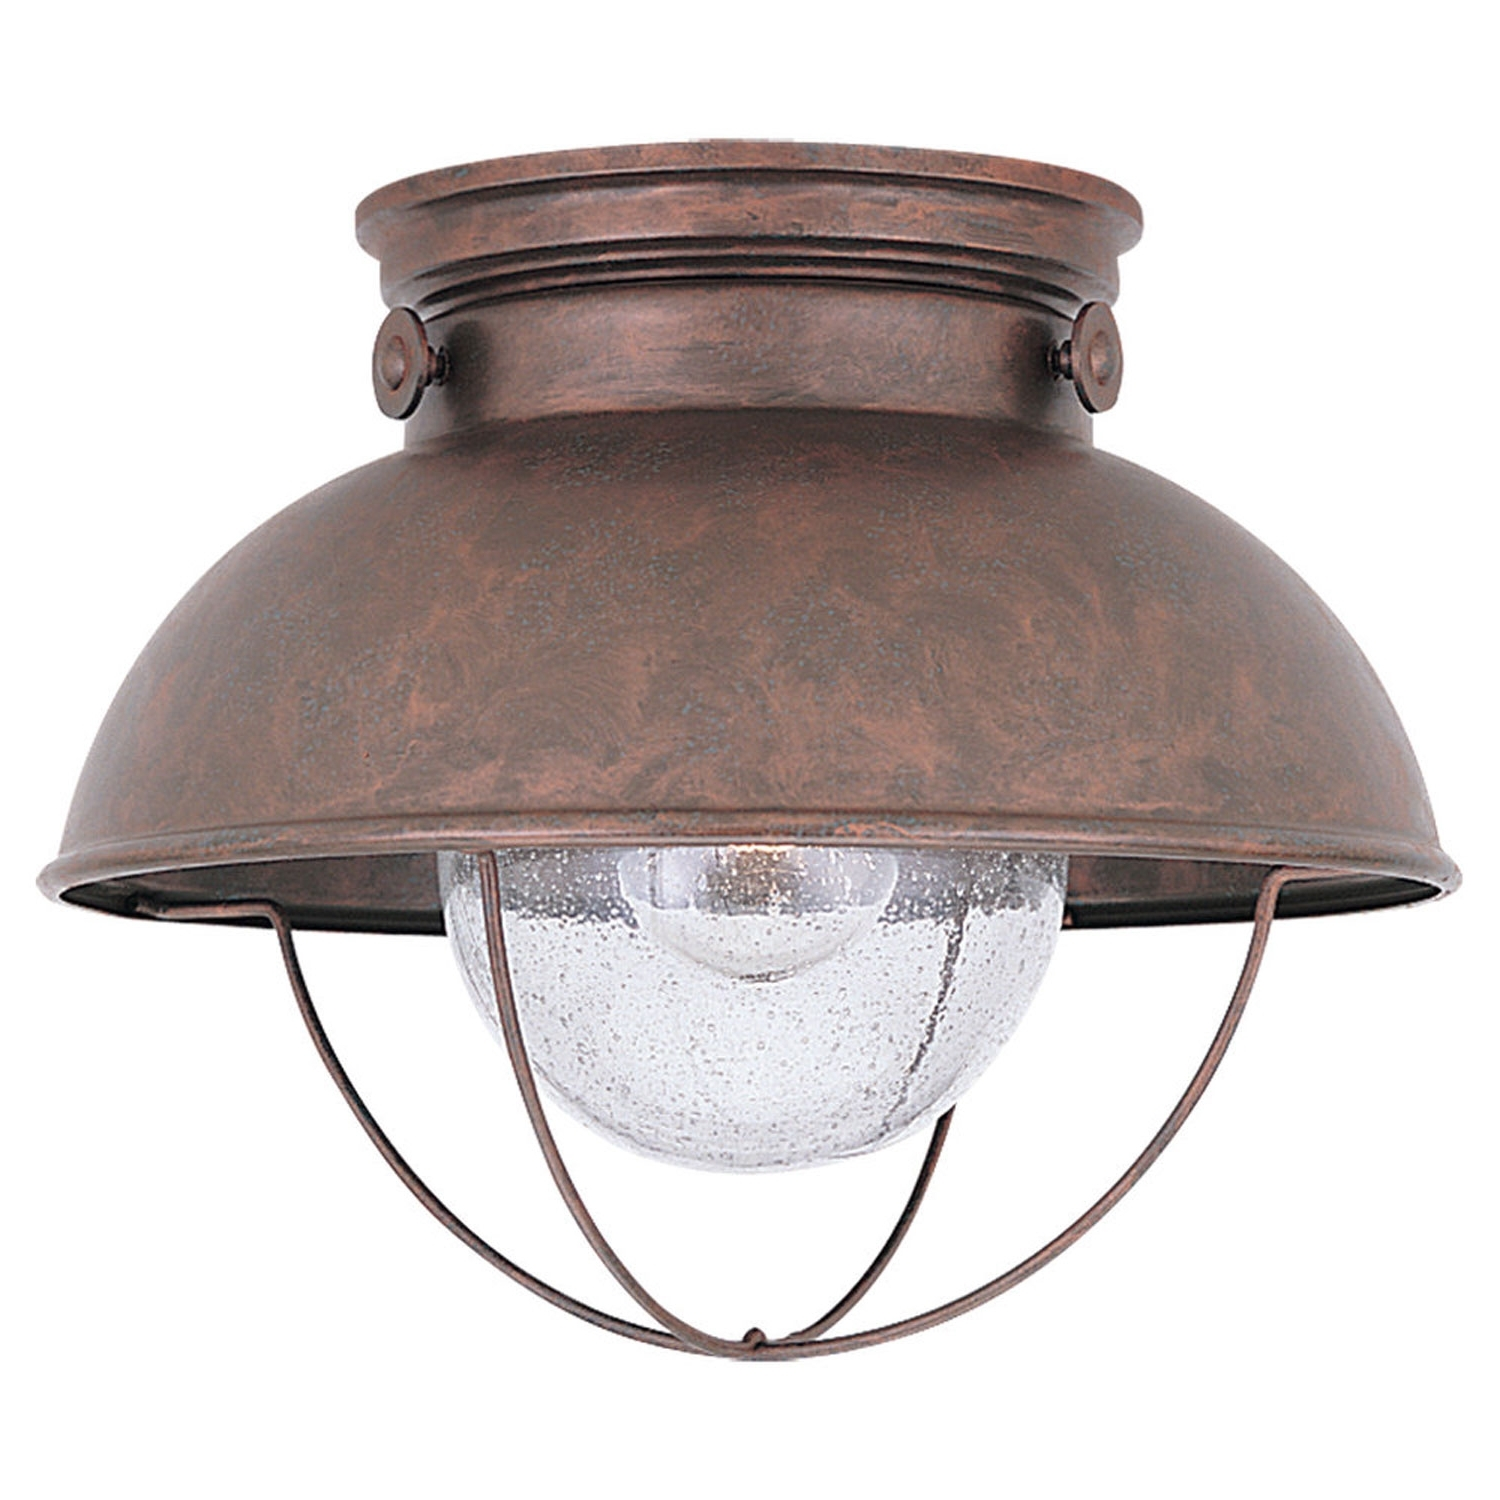 Exterior Light Fixtures In Bronze, Copper Inside Galvanized Outdoor Ceiling Lights (View 9 of 20)